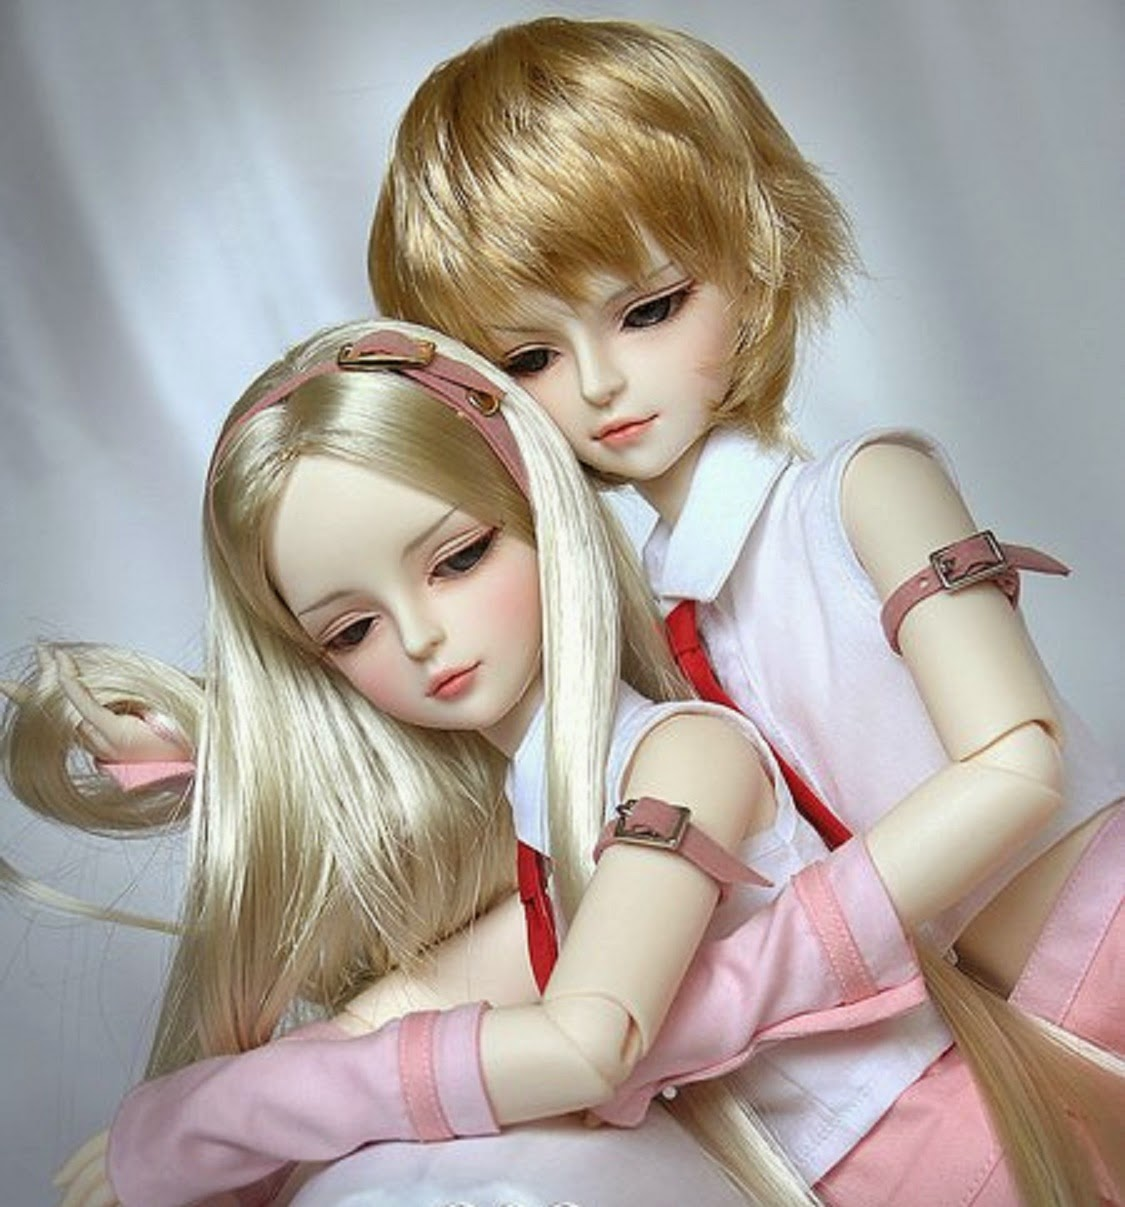 Beautiful And Cute Dolls Images Hd Wallpaper Heaven Wallpapers